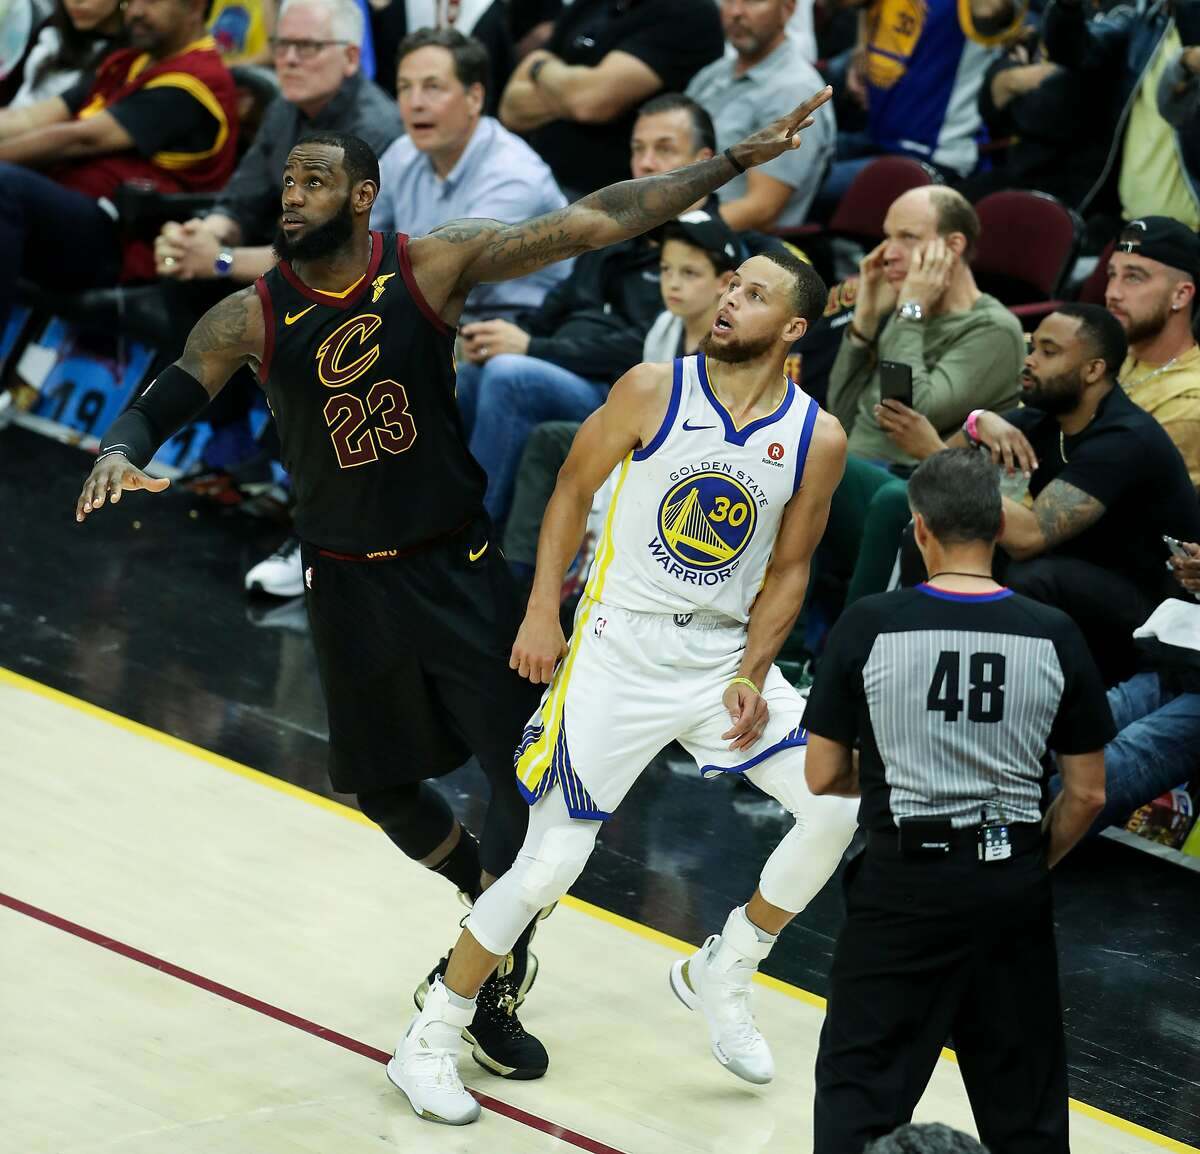 Golden State Warriors' Stephen Curry and Cleveland Cavaliers' LeBron James watch a Curry shot in the fourth quarter during game 4 of The NBA Finals between the Golden State Warriors and the Cleveland Cavaliers at Quicken Loans Arena on Friday, June 8, 2018 in Cleveland, Ohio.